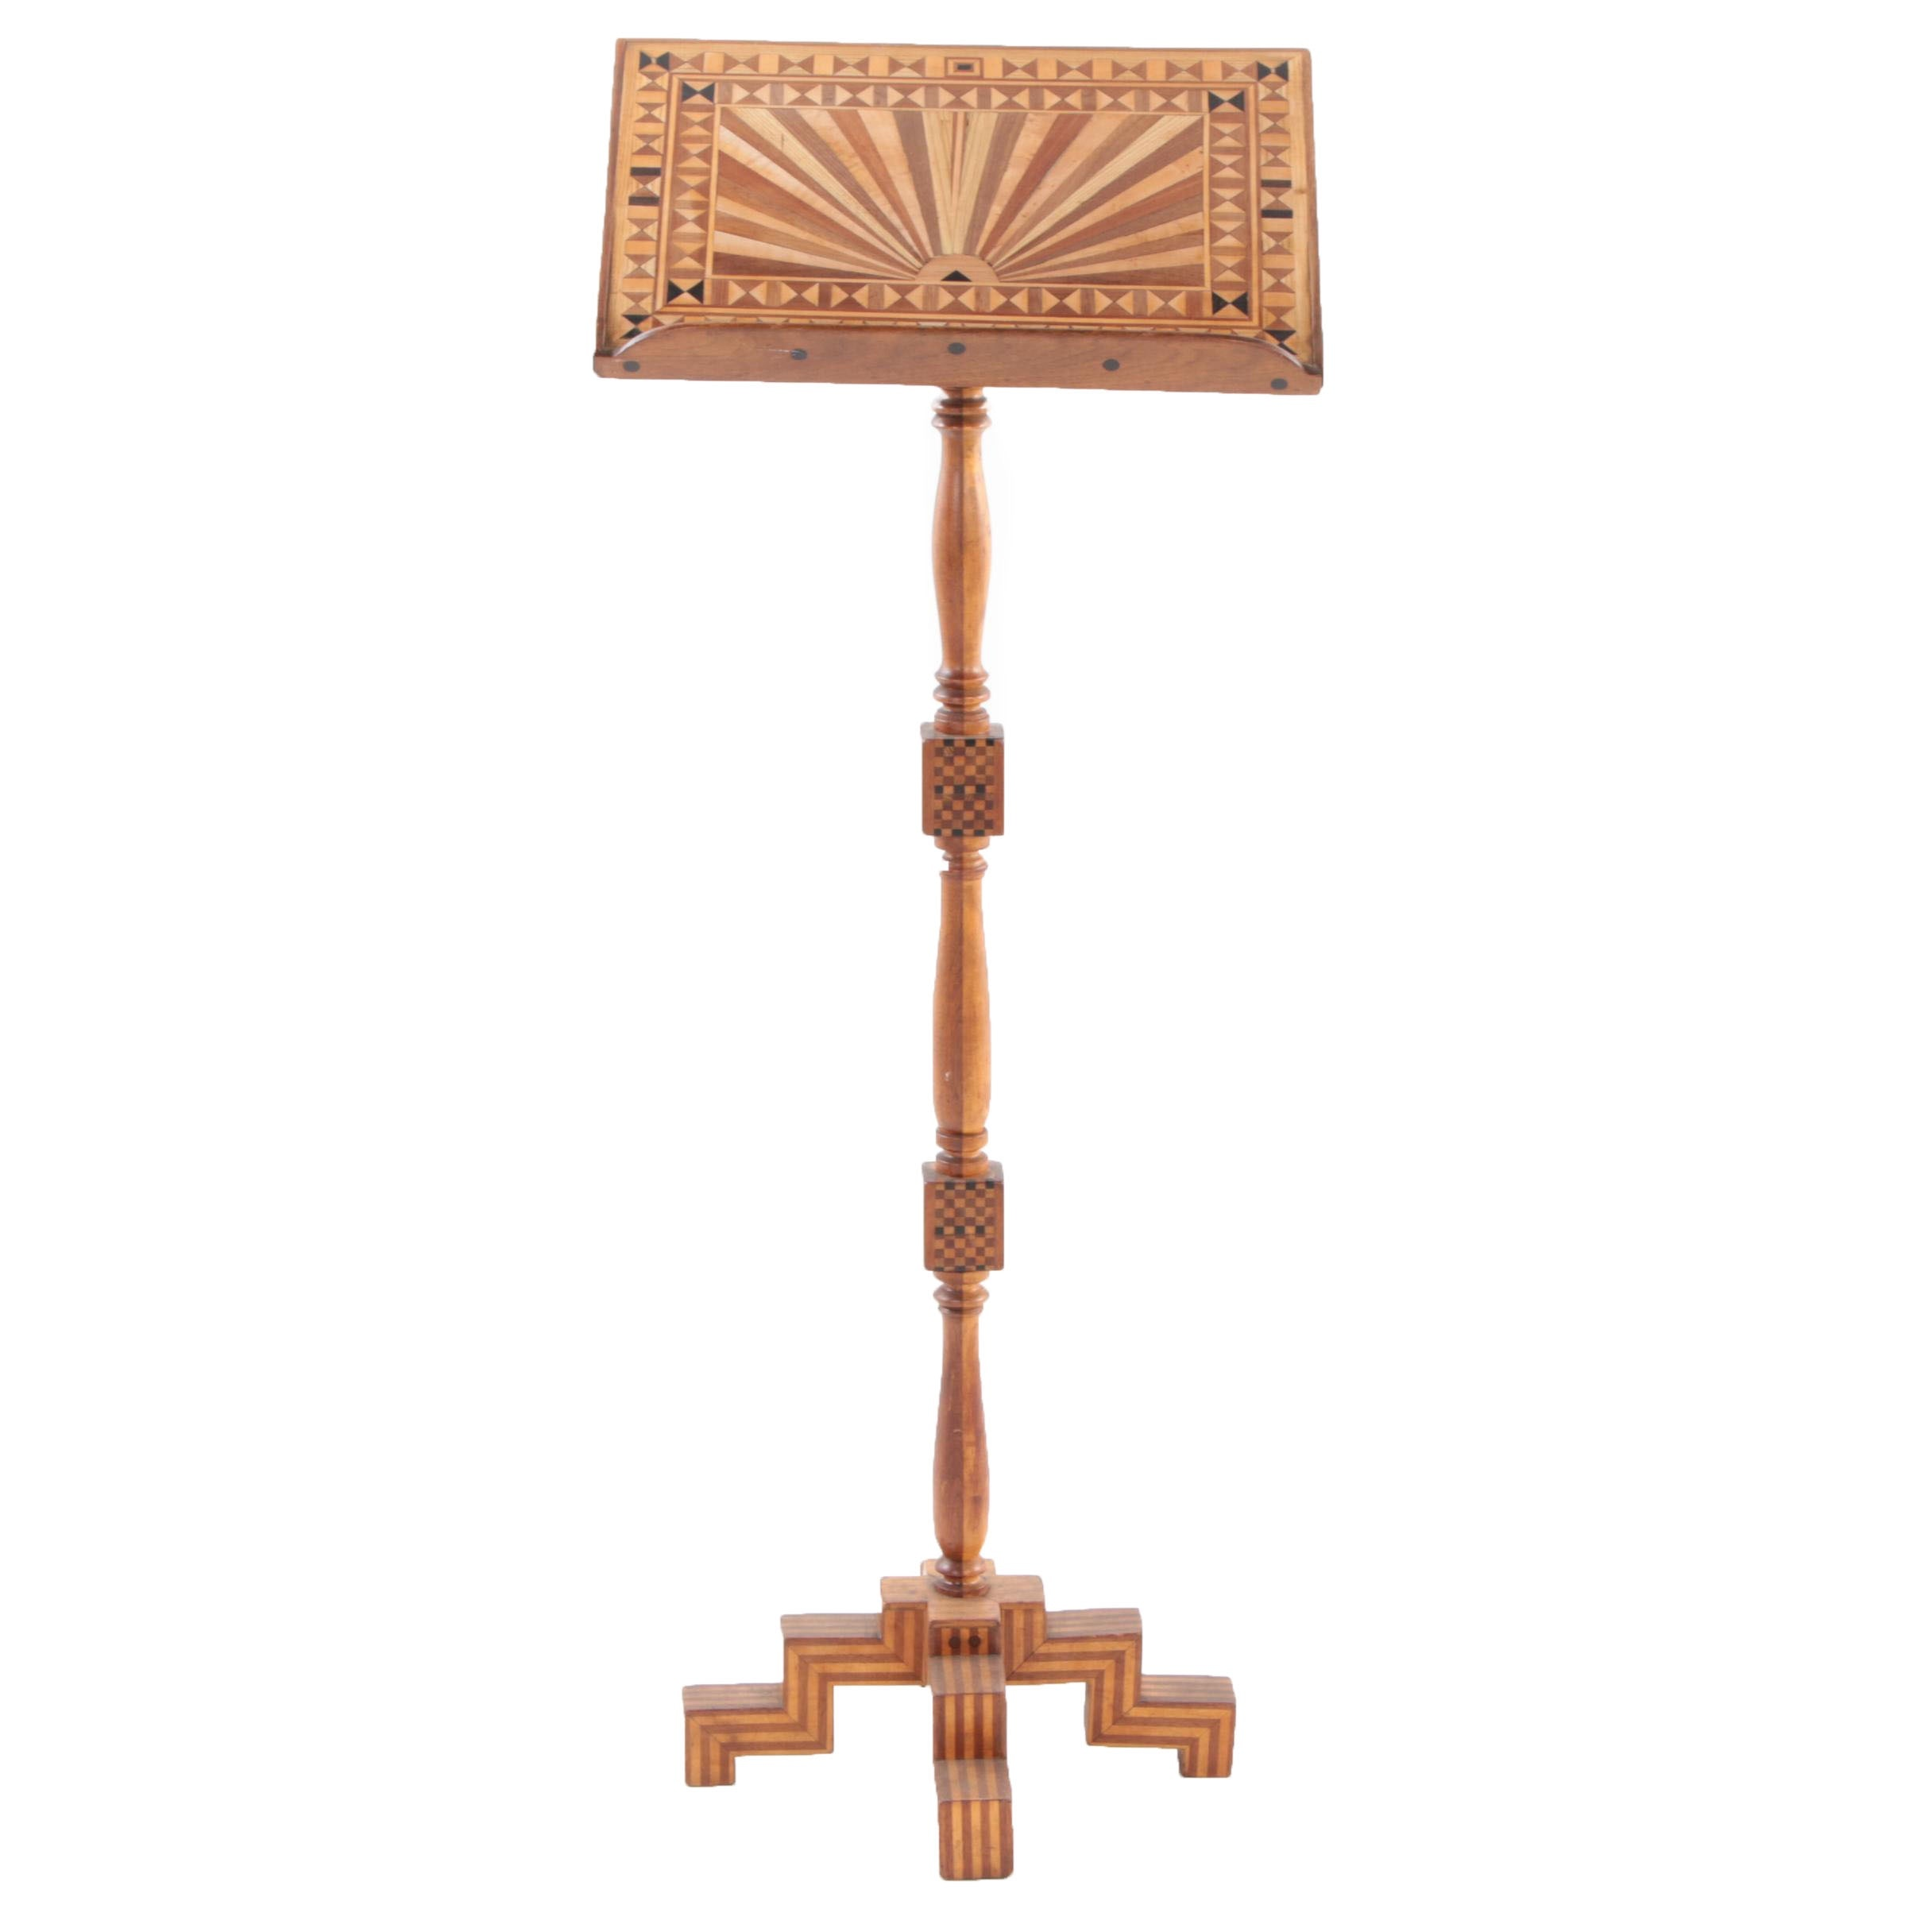 American Folk Art Parquetry Music Stand or Speaker's Podium, Early 20th Century